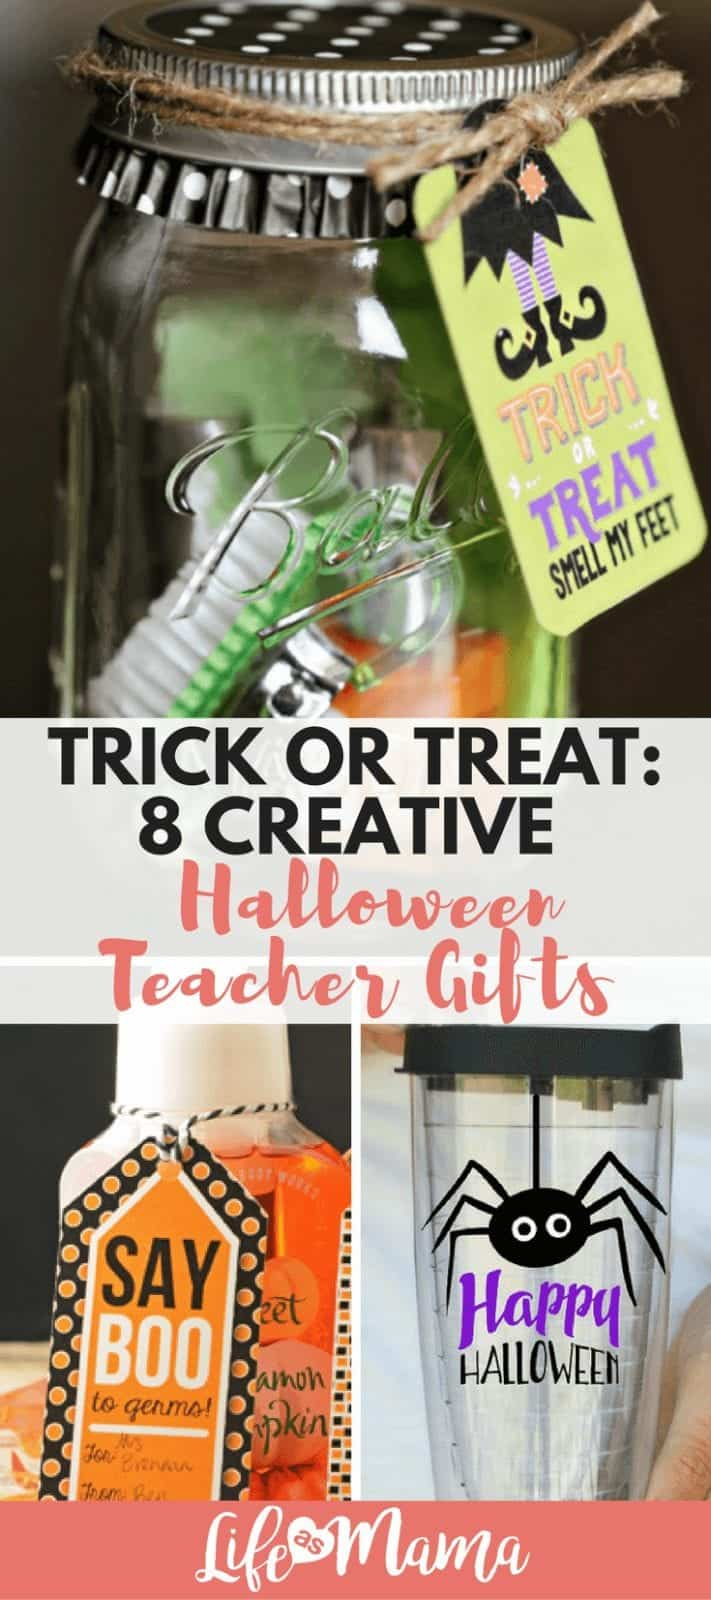 Trick-Or-Treat-8-Creative-Halloween-Teacher-Gifts